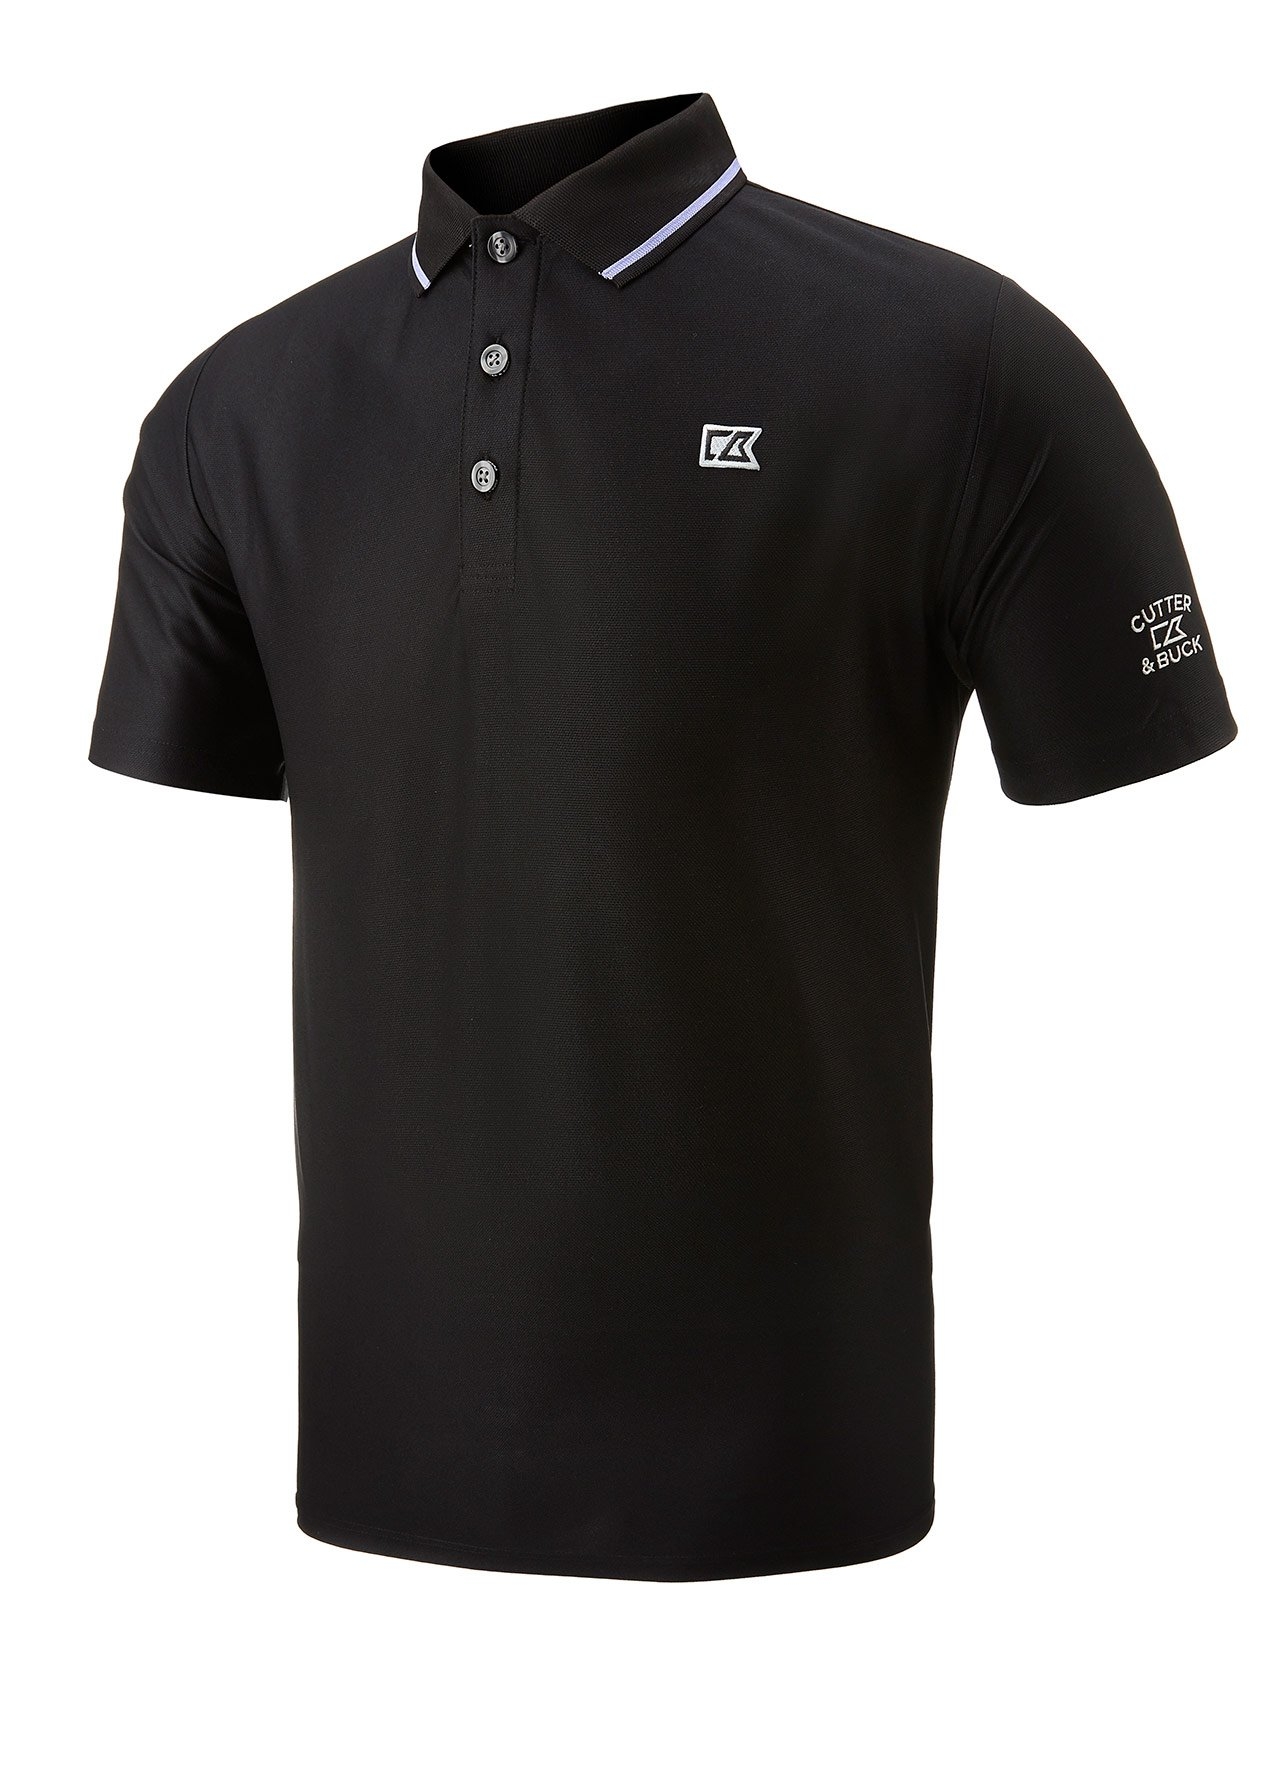 Golf clothing shirts black cutter buck drytec golf for Cutter buck polo shirt size chart